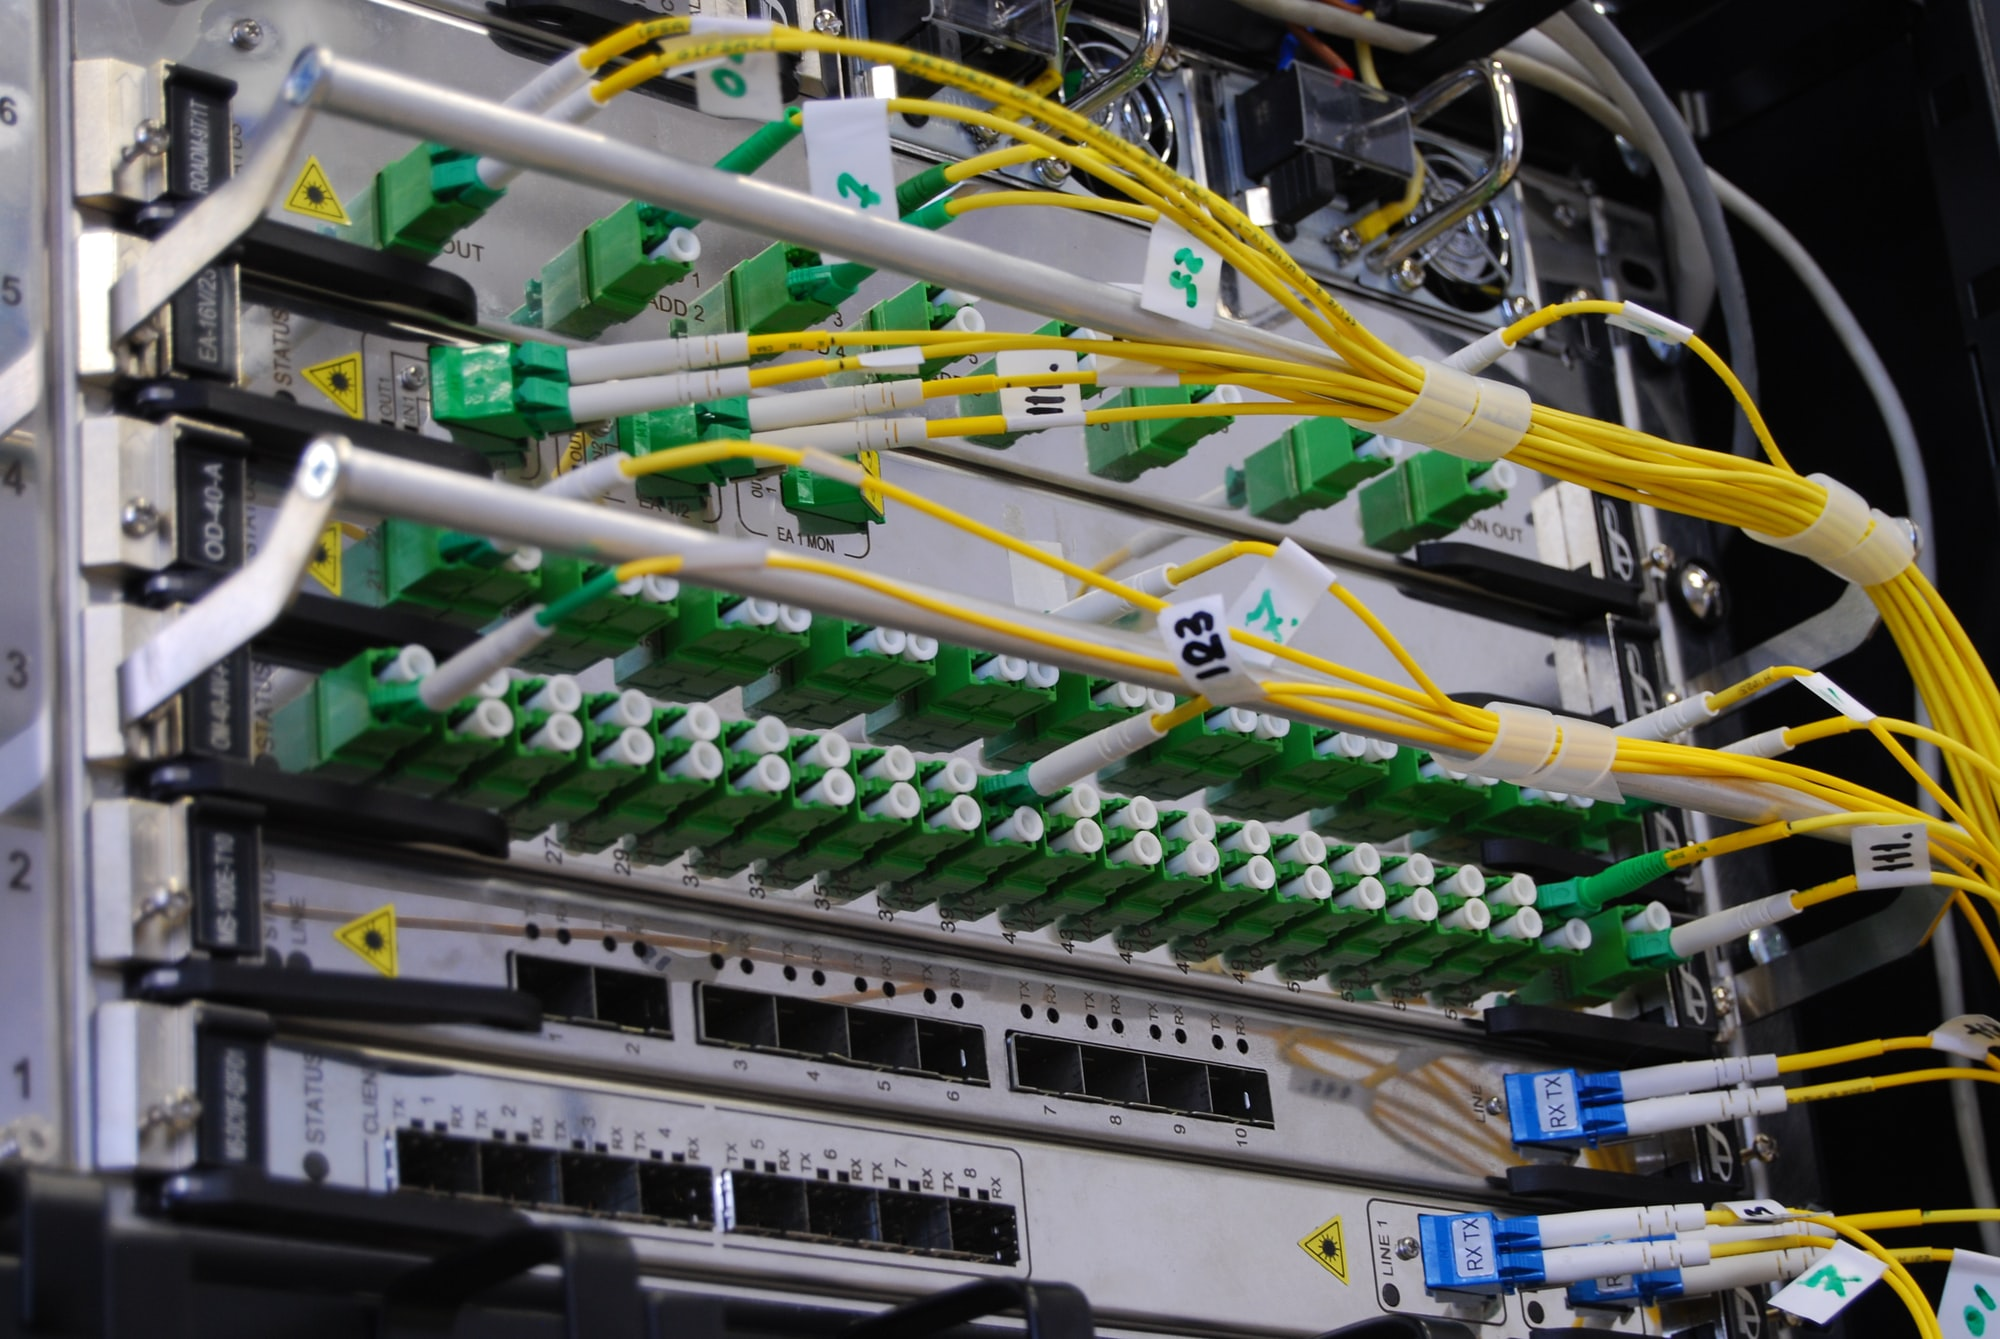 Higher BGP Local Preference for IX Peering: Good Practice or Bad?